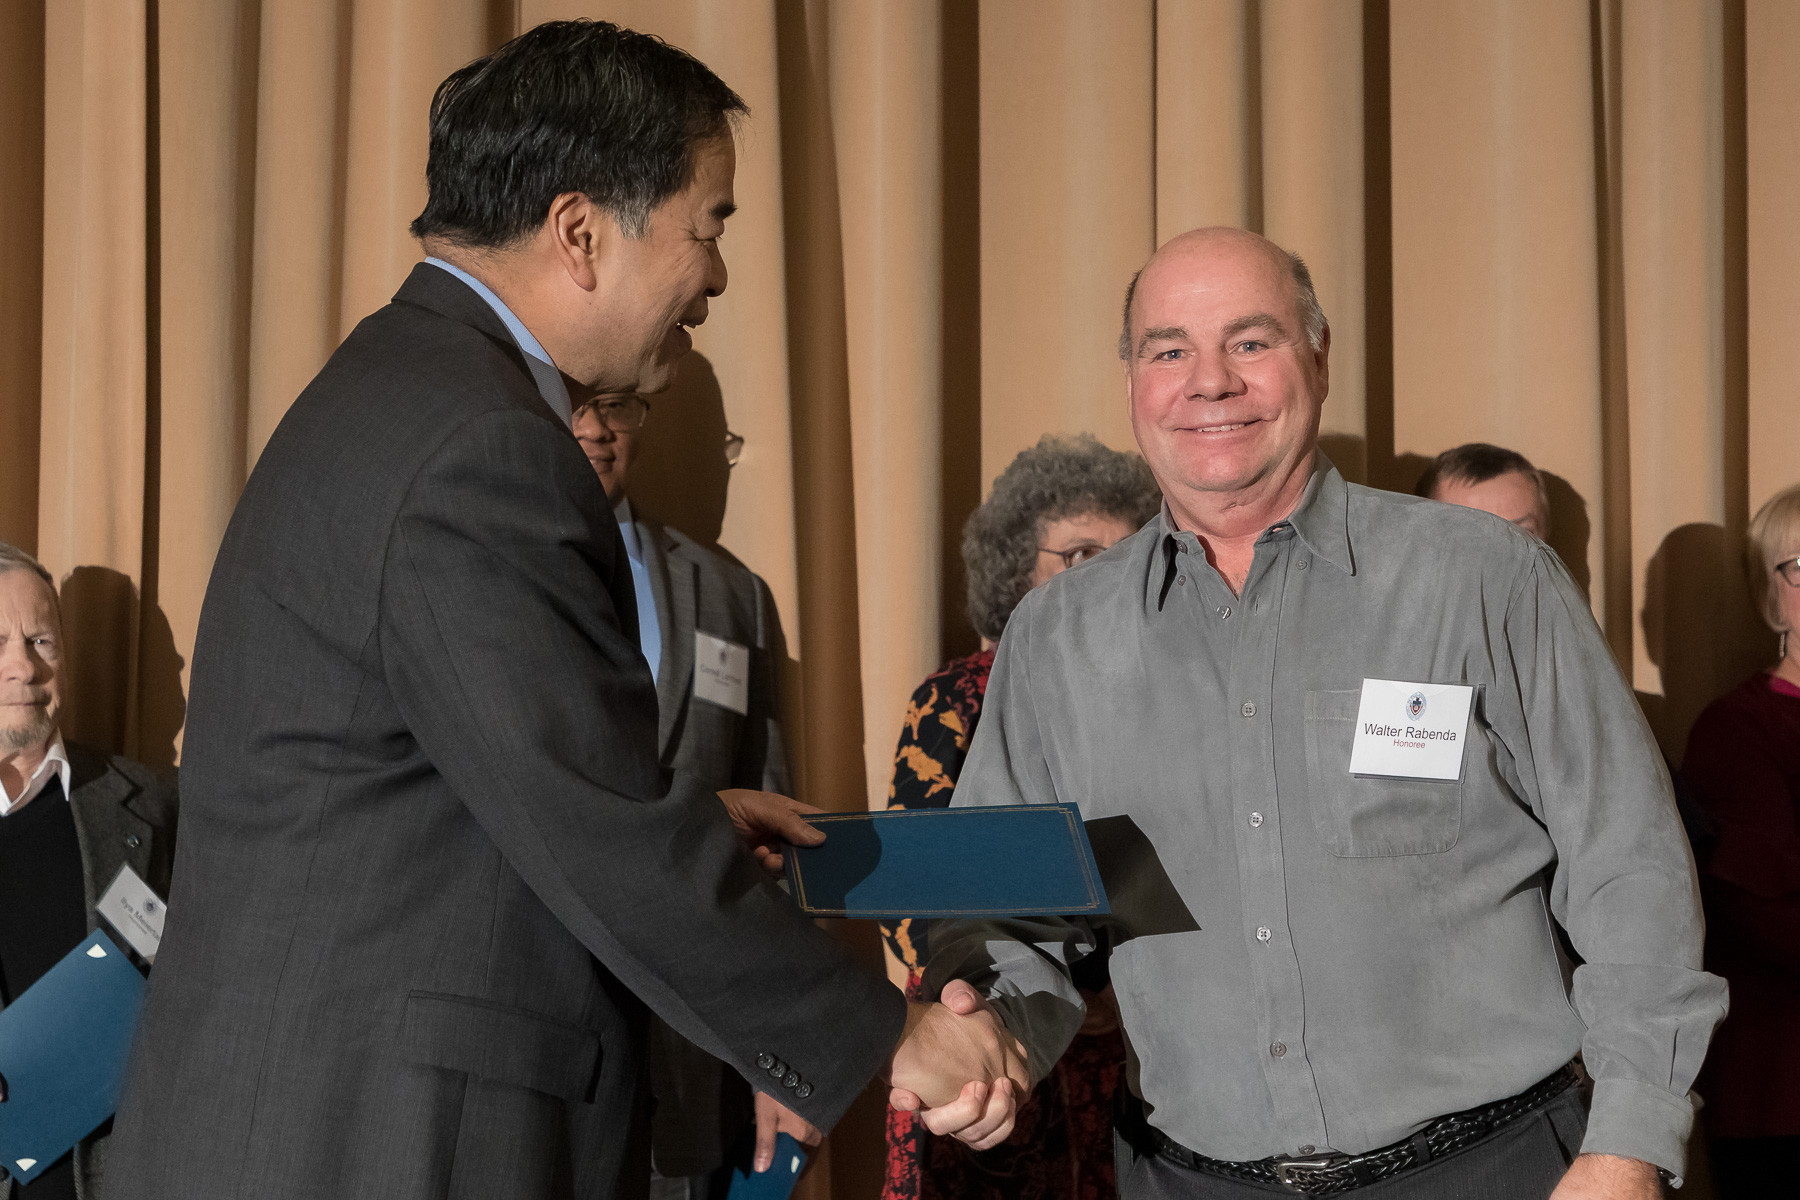 Walter Rabenda, right, with A. Gabriel Esteban, Ph.D., president, as faculty and staff members are inducted into DePaul University's 25 Year Club, Tuesday, Nov. 13, 2018, at the Lincoln Park Student Center. Employees celebrating their 25th work anniversary were honored at the luncheon with their colleagues and will have their names added to plaques located on the Loop and Lincoln Park Campuses. (DePaul University/Jeff Carrion)